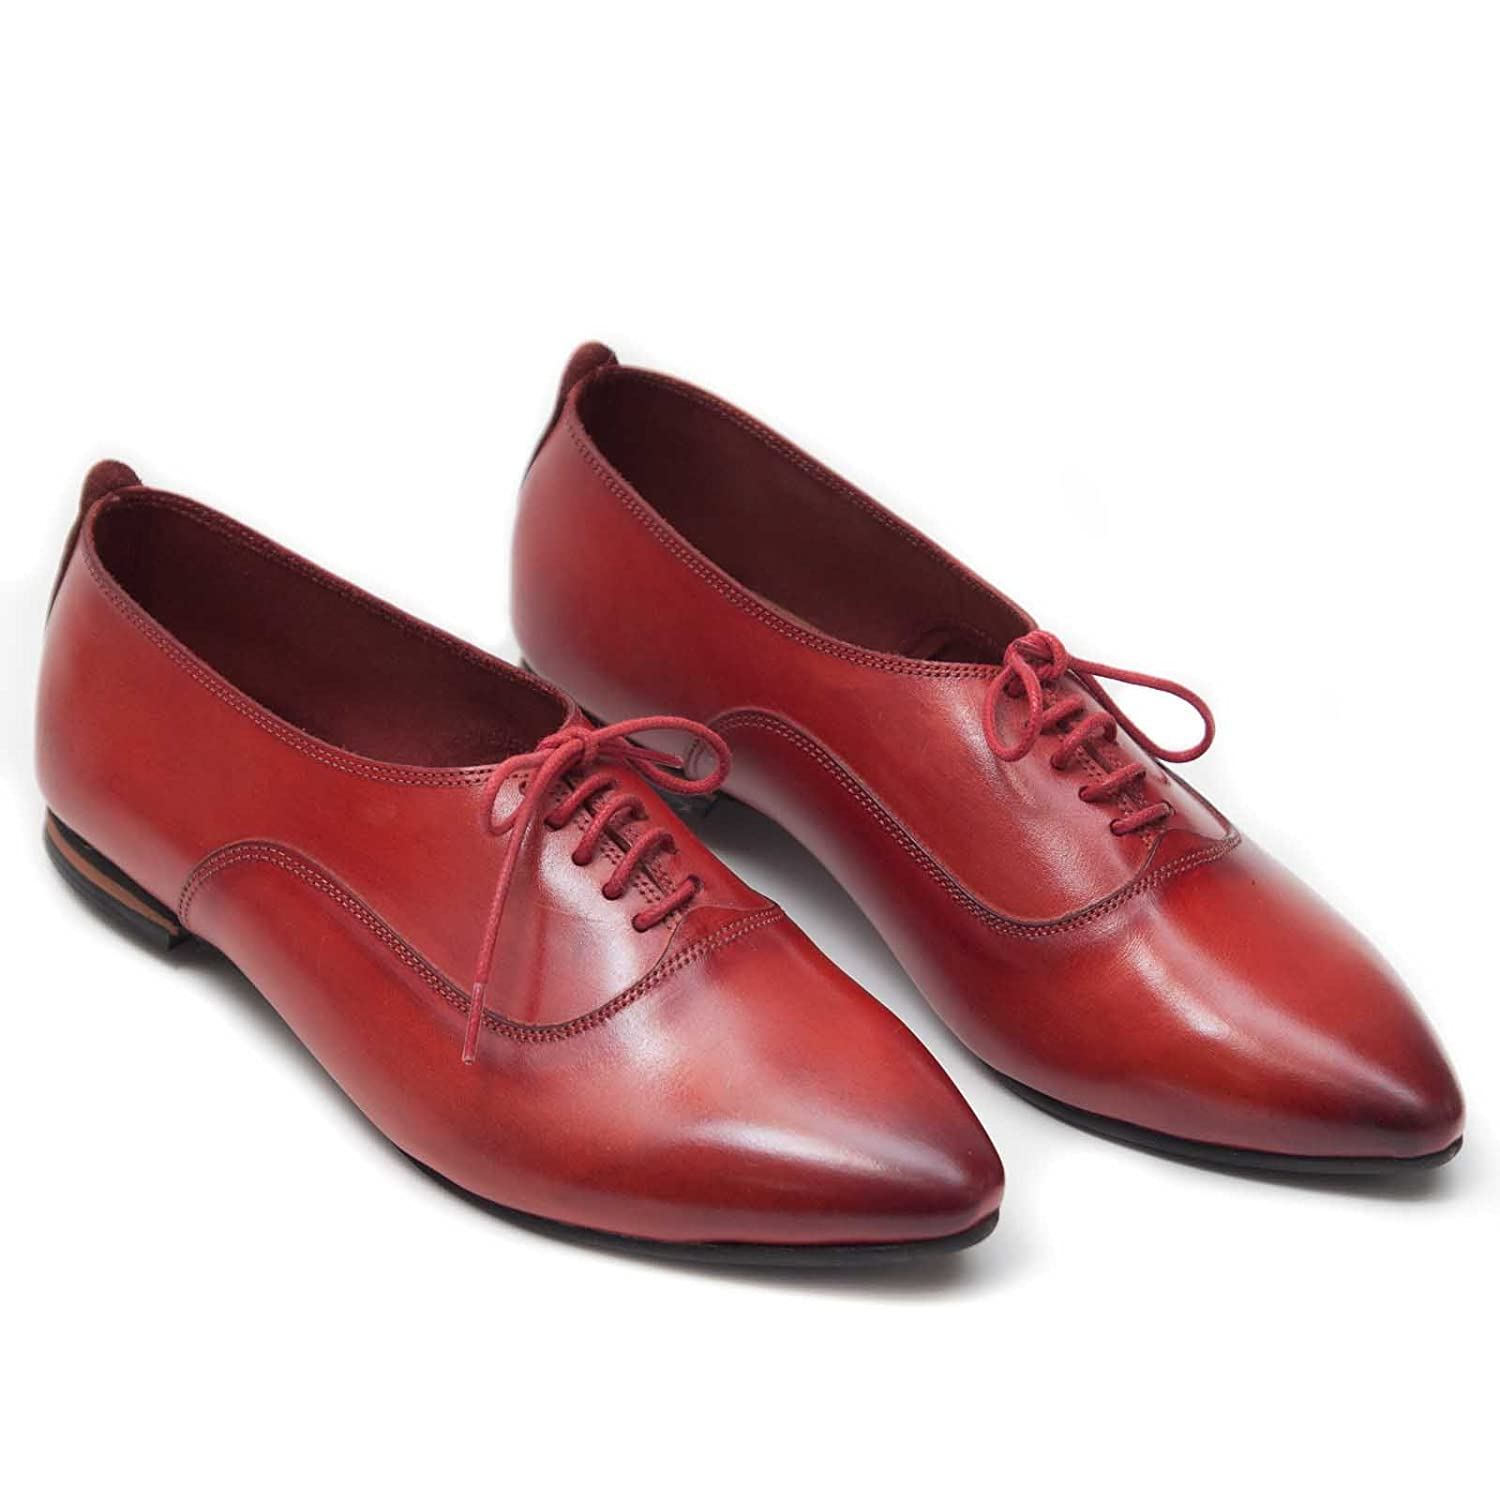 ab7be6a7c7b2e Bangi Handmade Women Leather Oxford Shoes